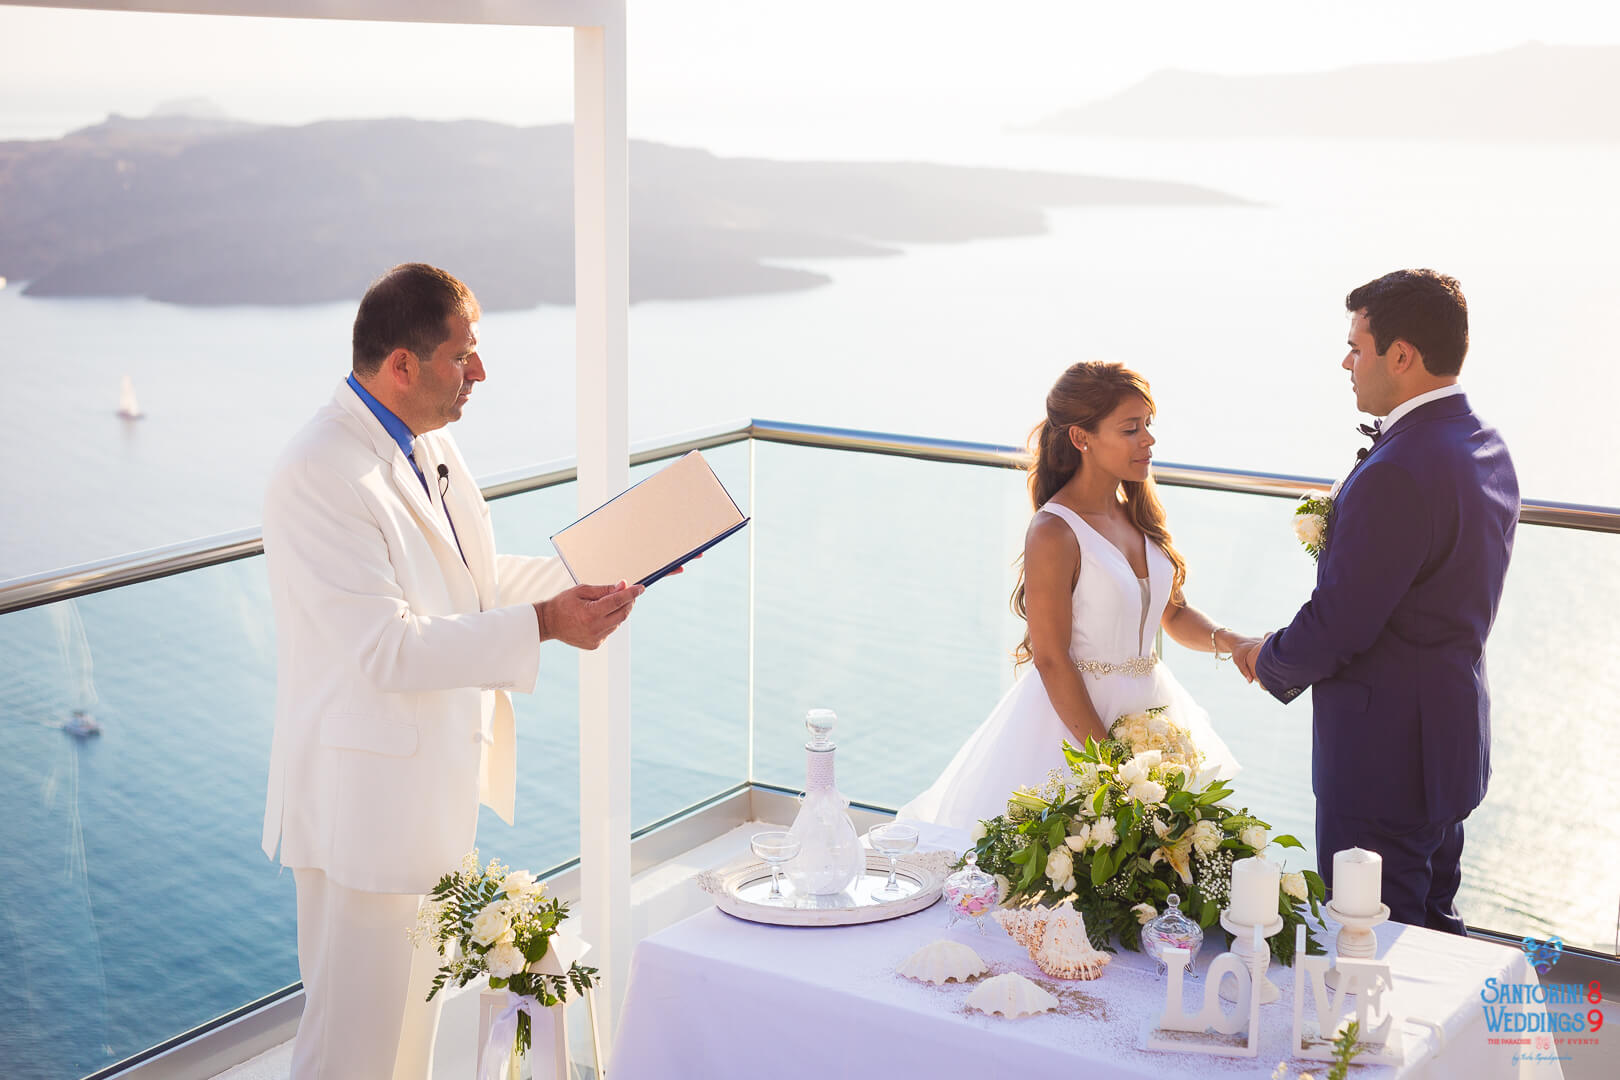 Photo Shooting Moments By Dragons Group   Santorini8 Weddings9   6